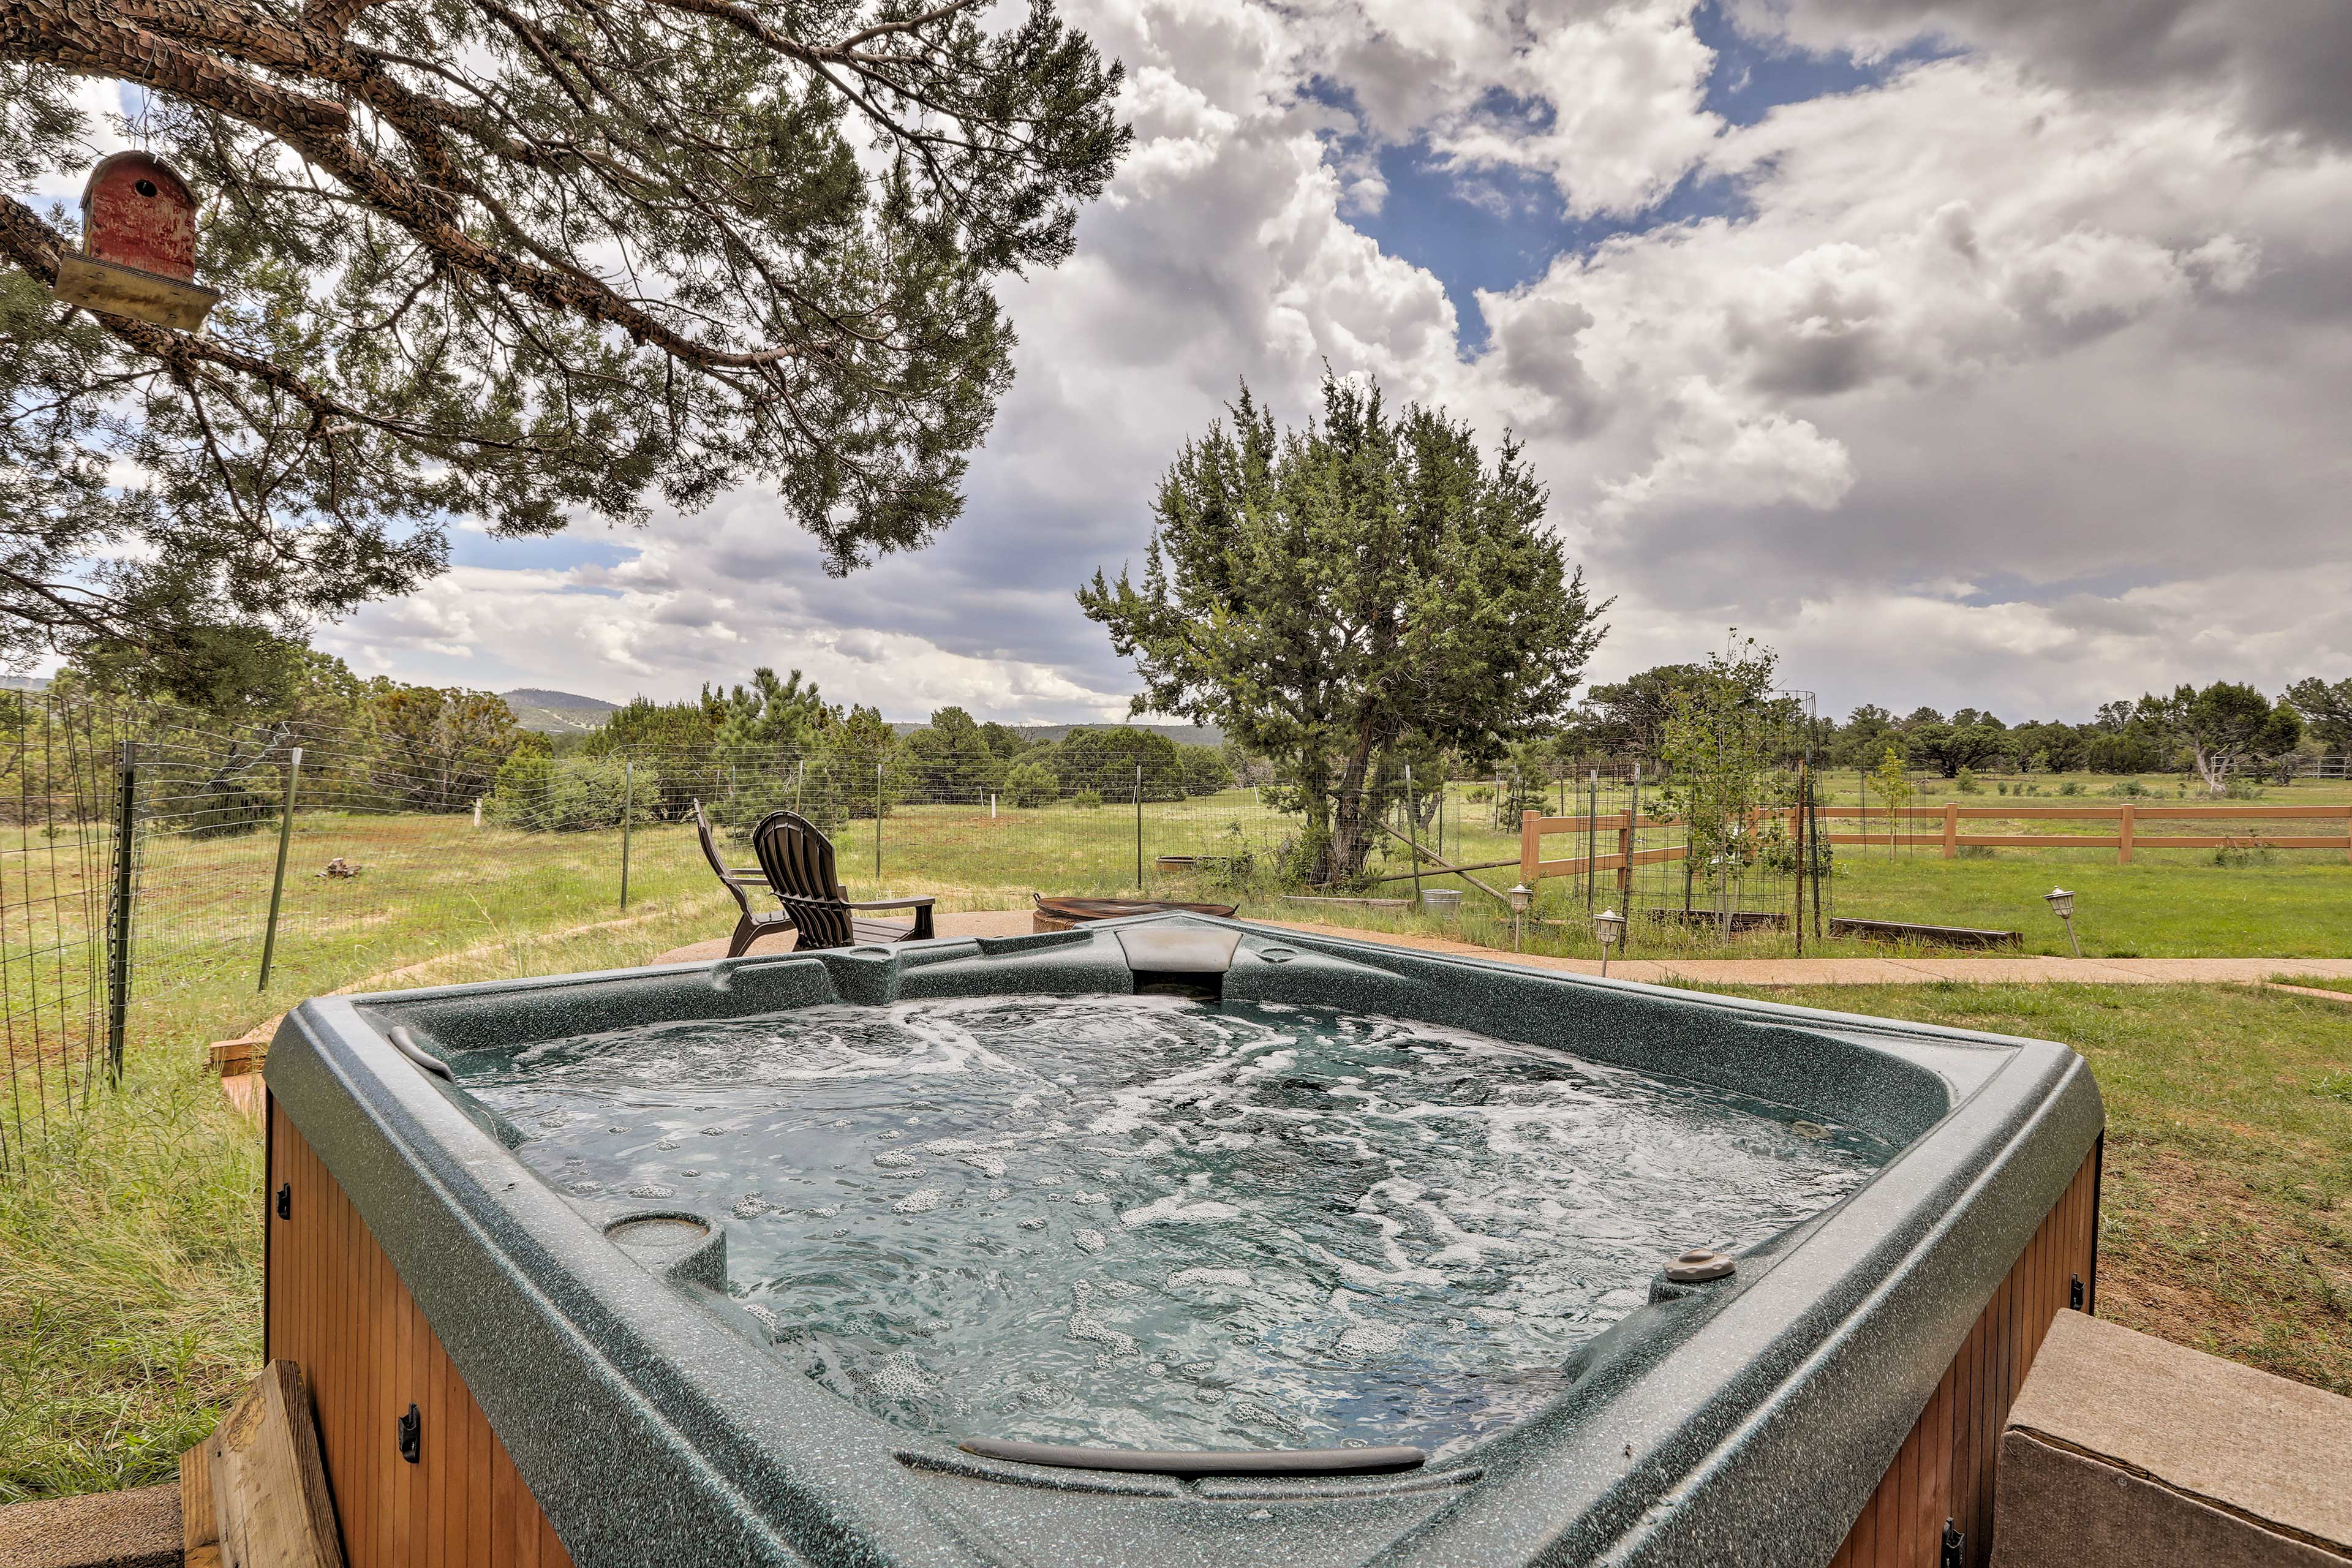 Soak in the hot tub any time of day for optimal relaxation!